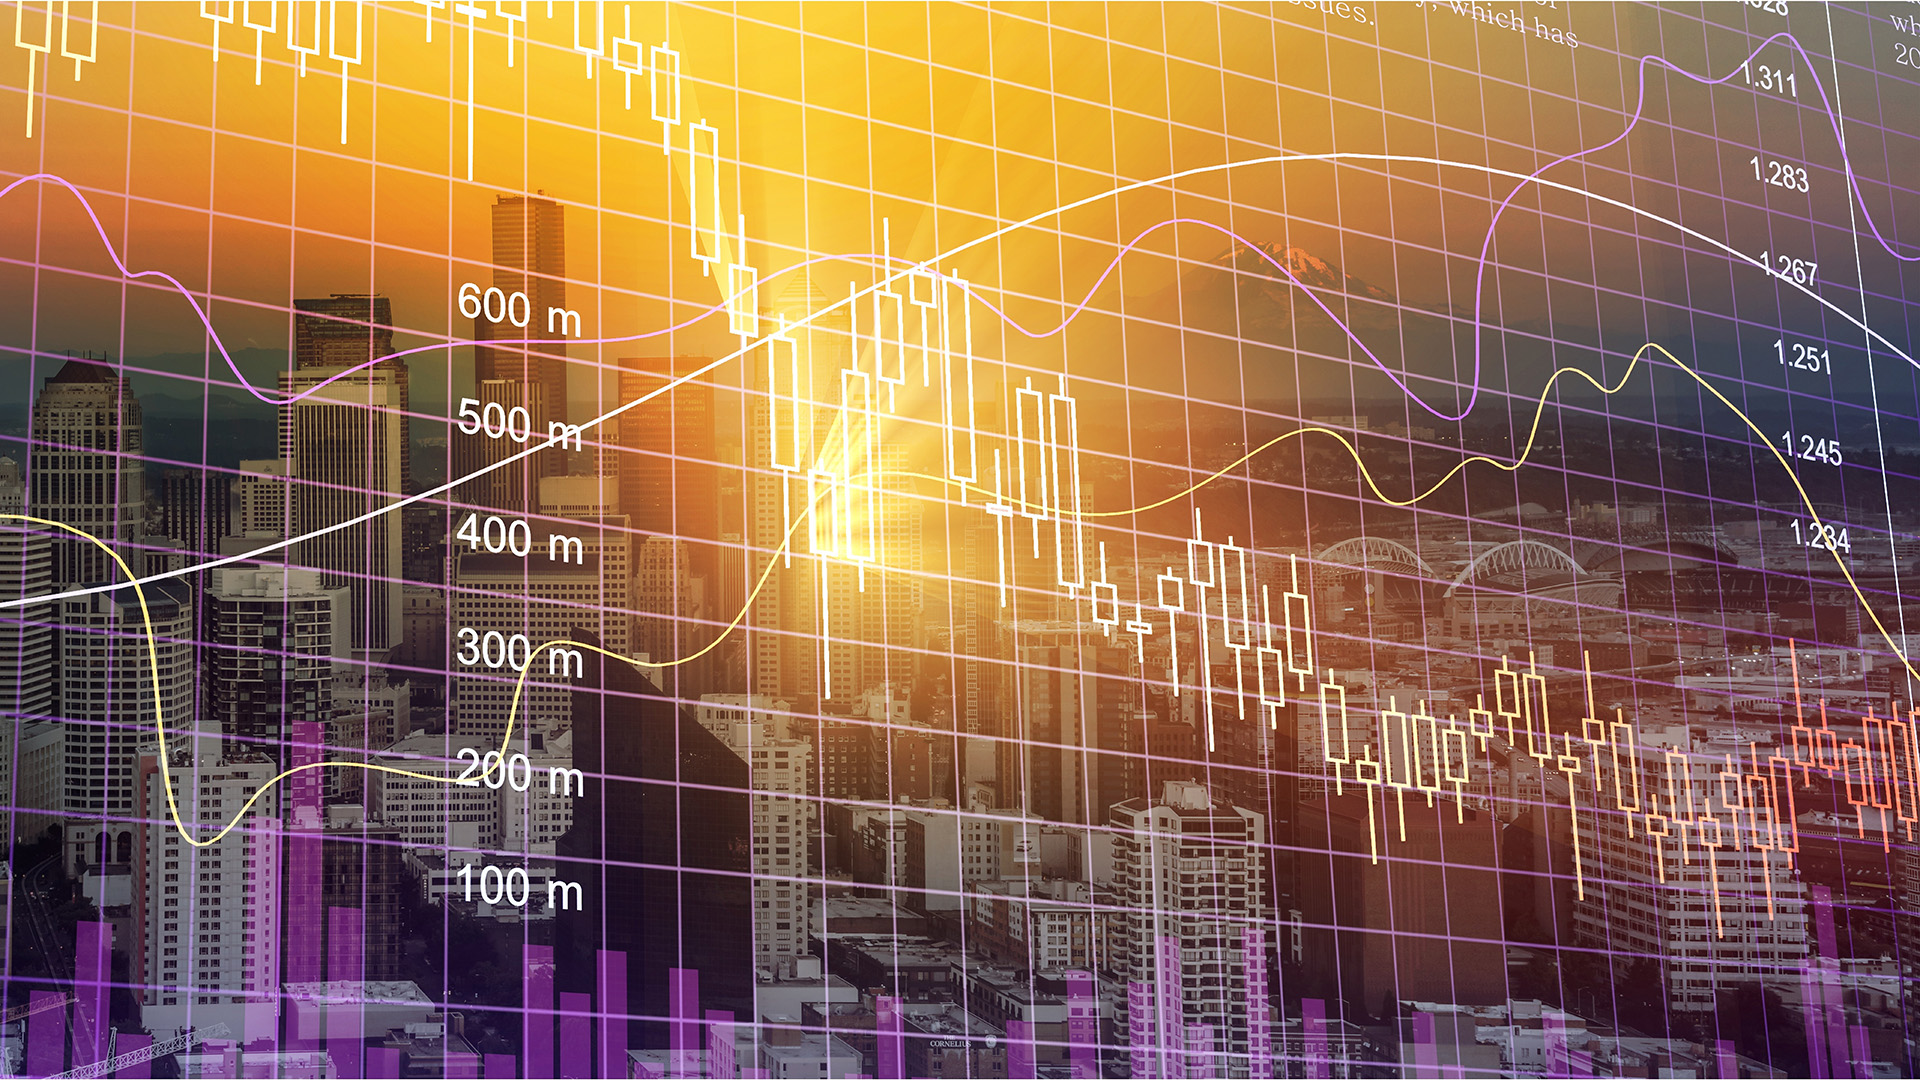 Purple and yellow financial graphs with city background